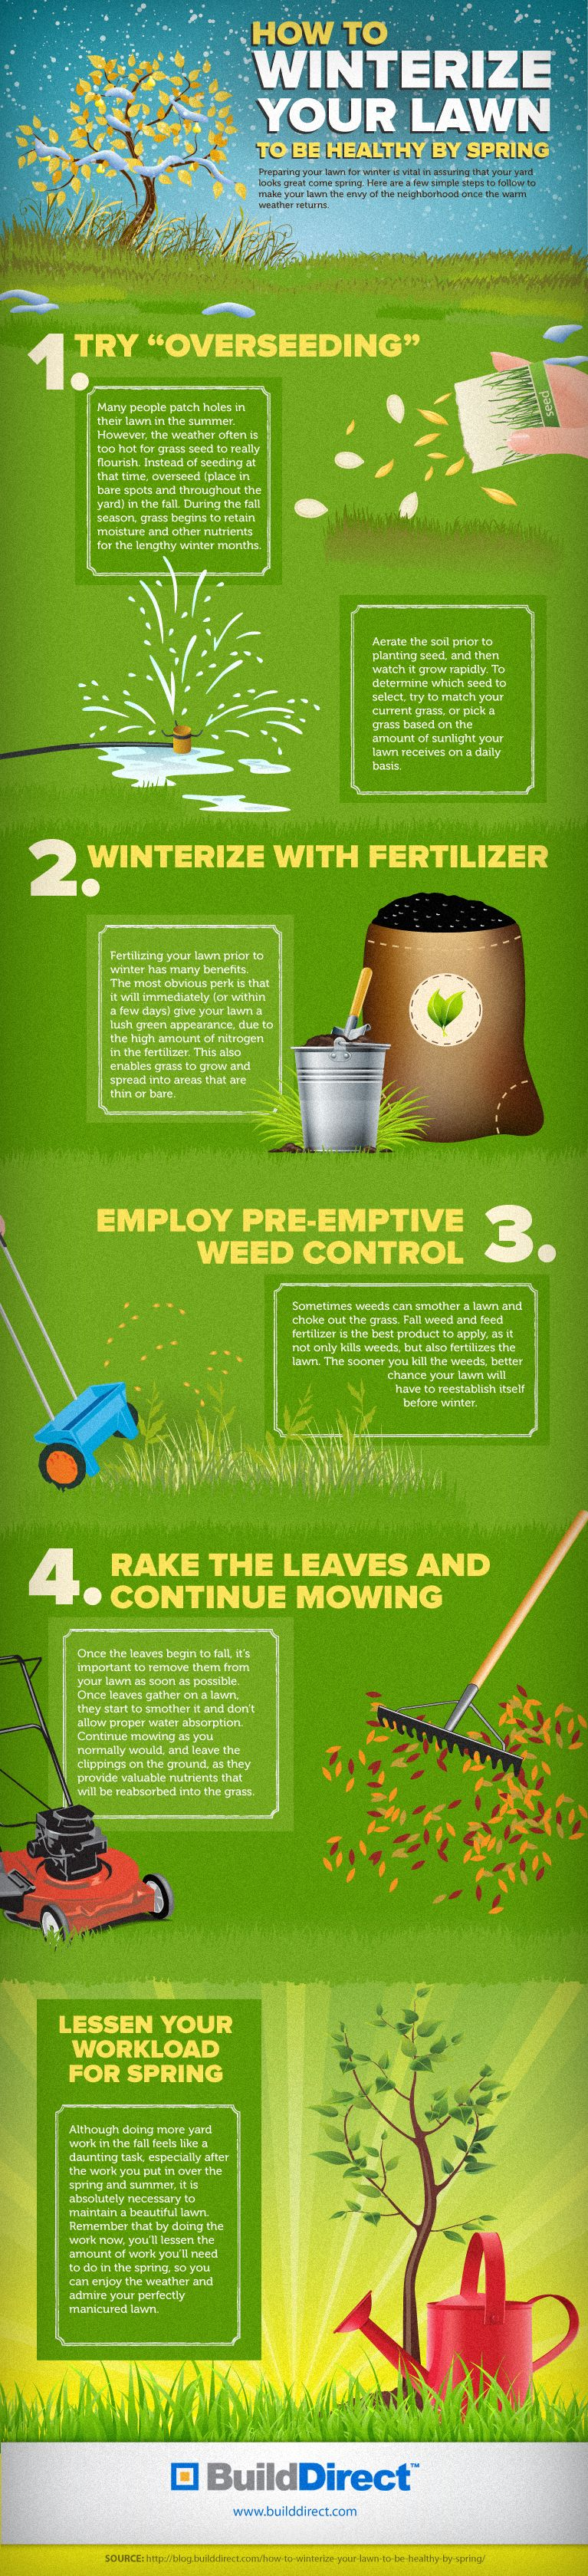 How Shred Leaves Lawn Mower